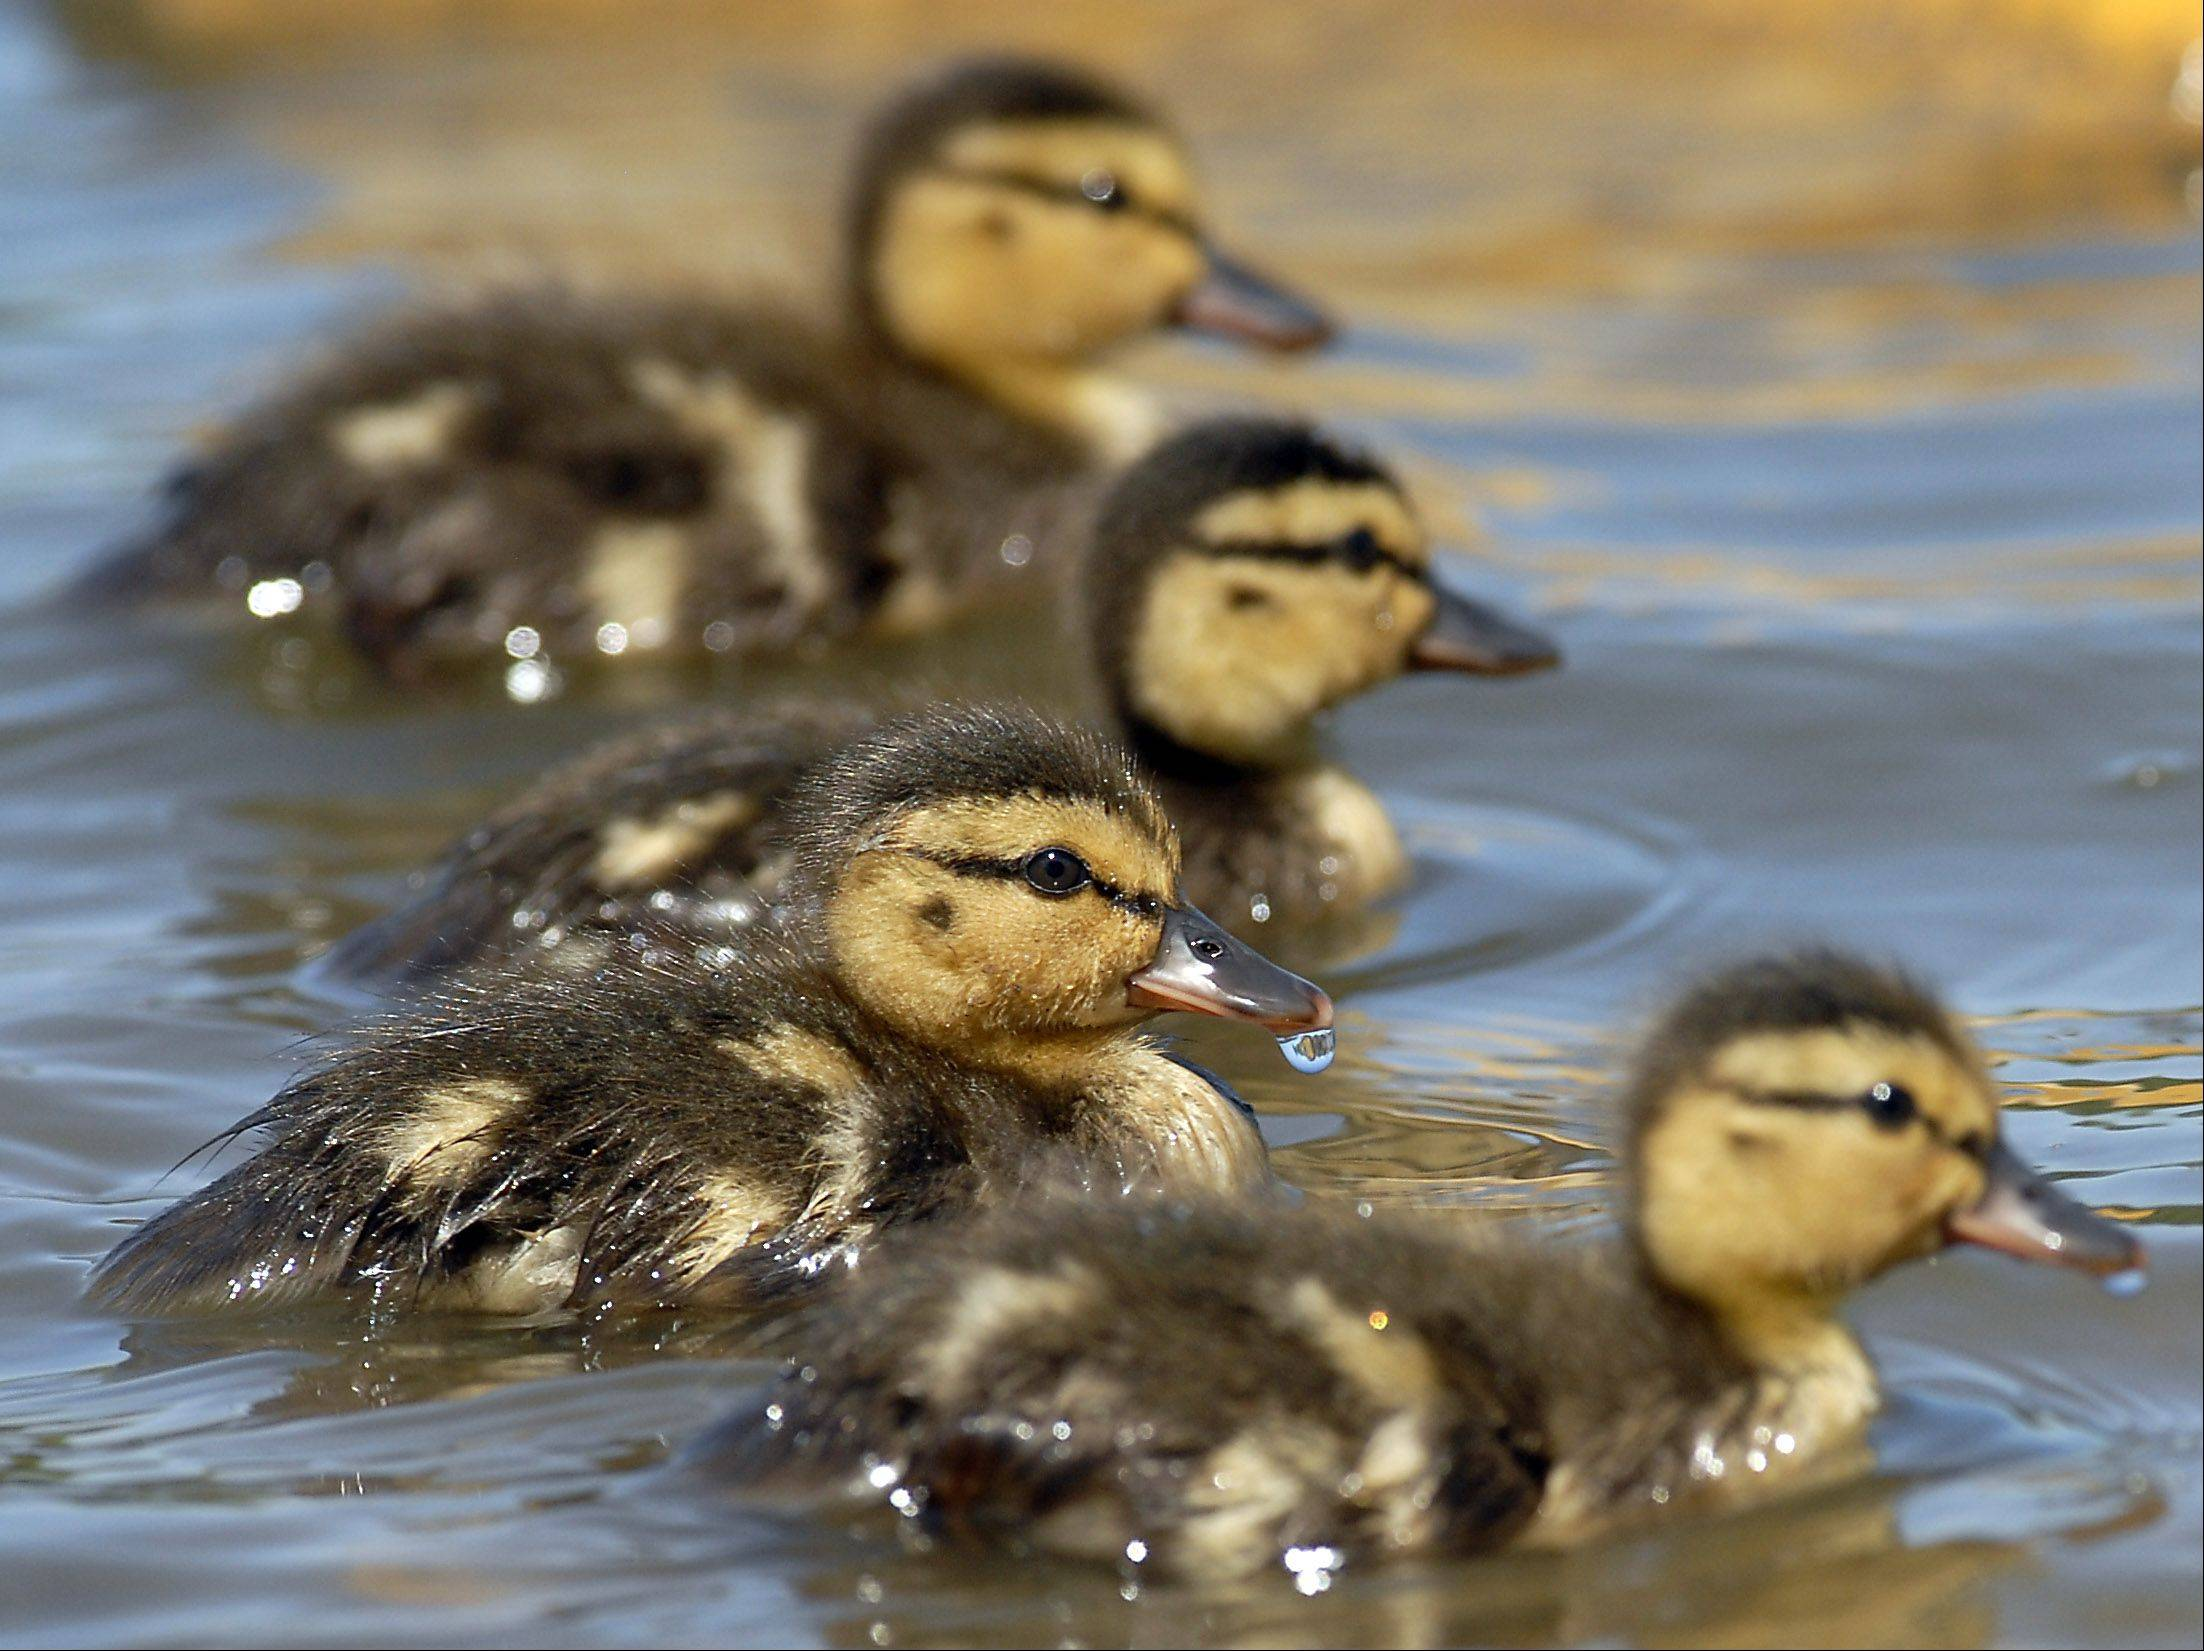 Ducklings are cute, but don't play amateur wildlife rescuer and remove them from where you find them, cautions Valerie Blaine.